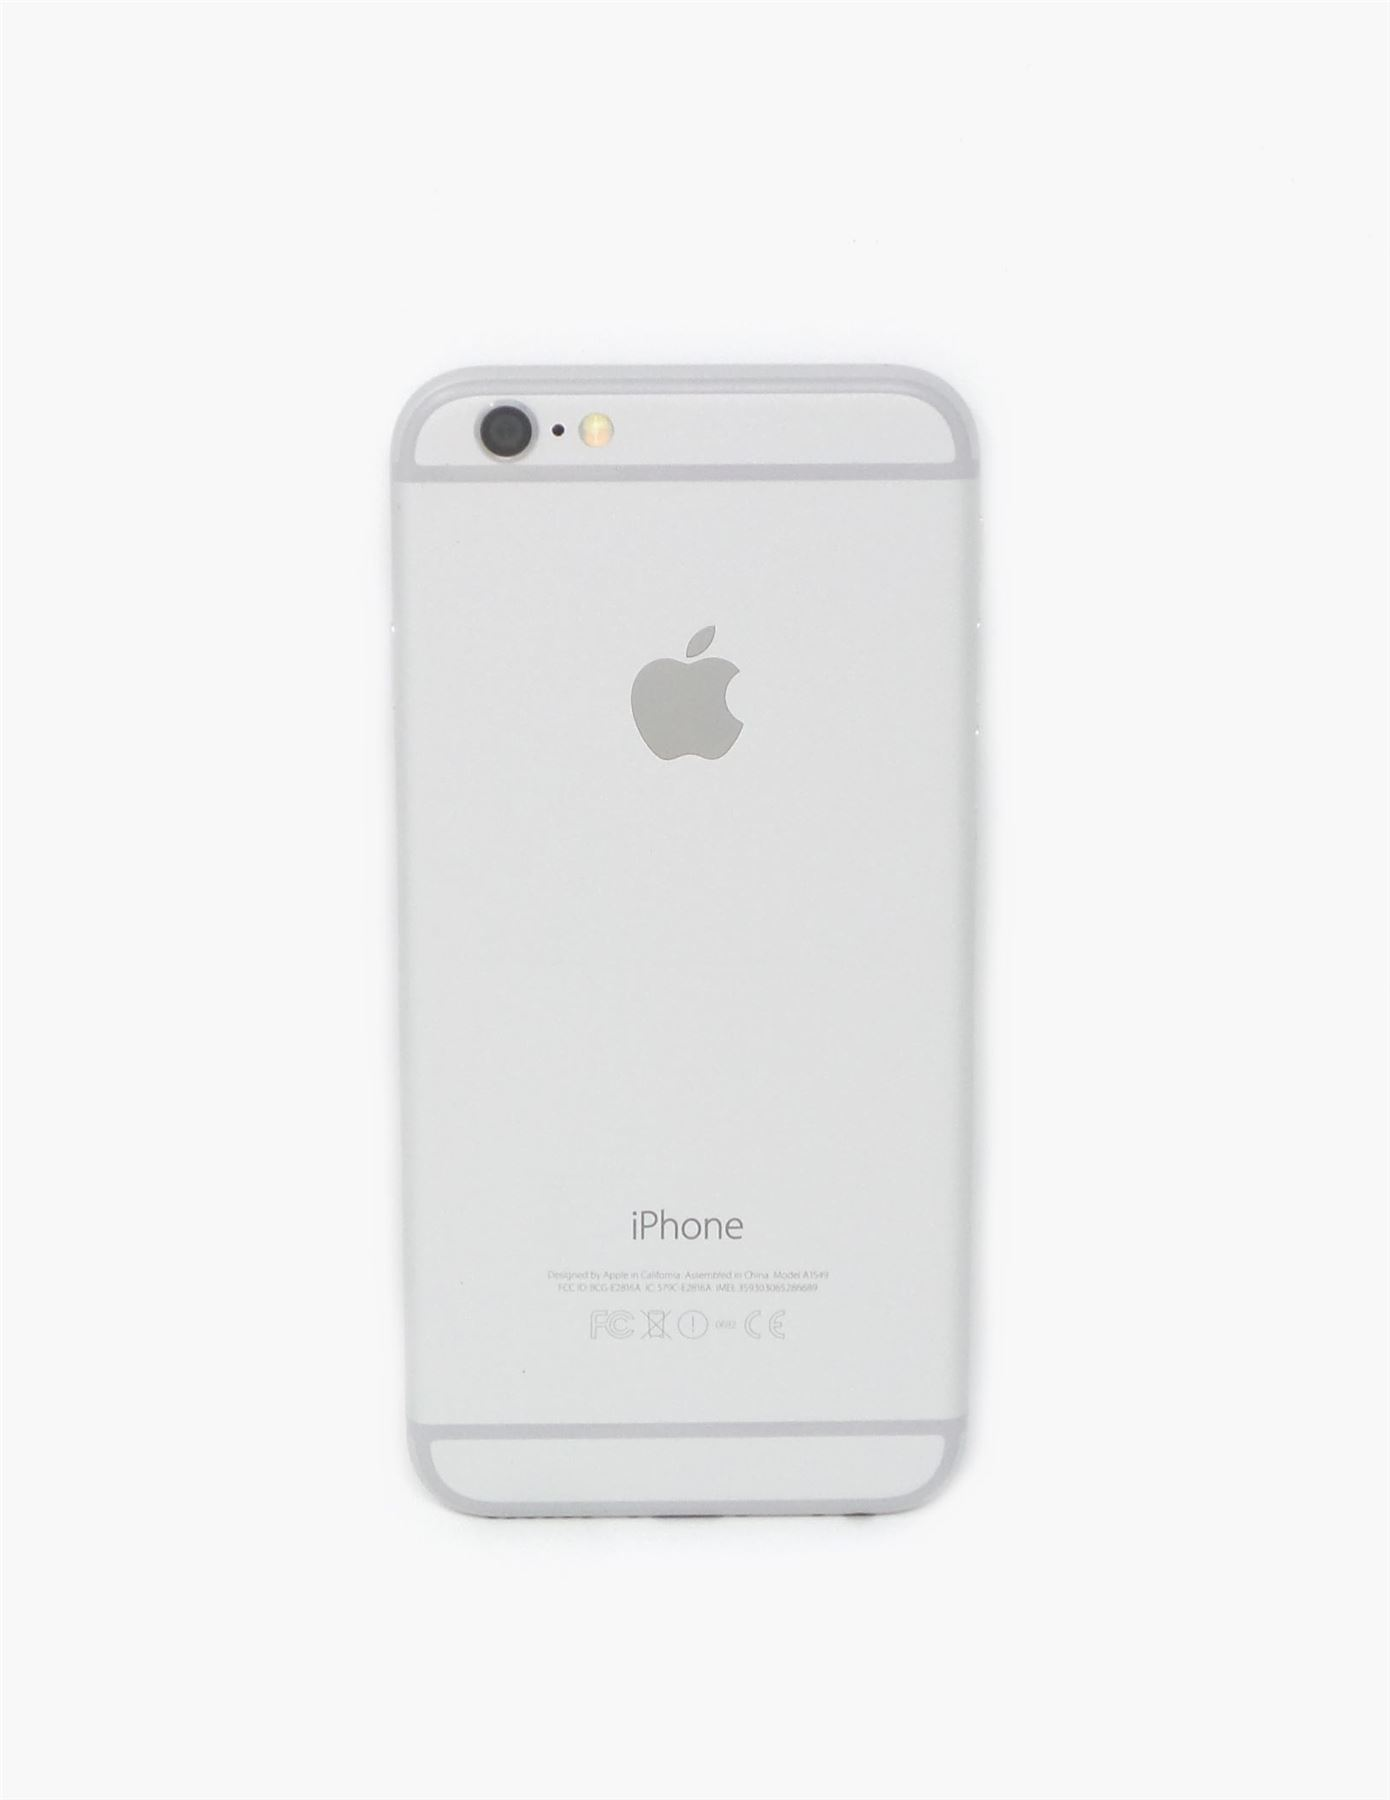 Iphone 6 trade in options